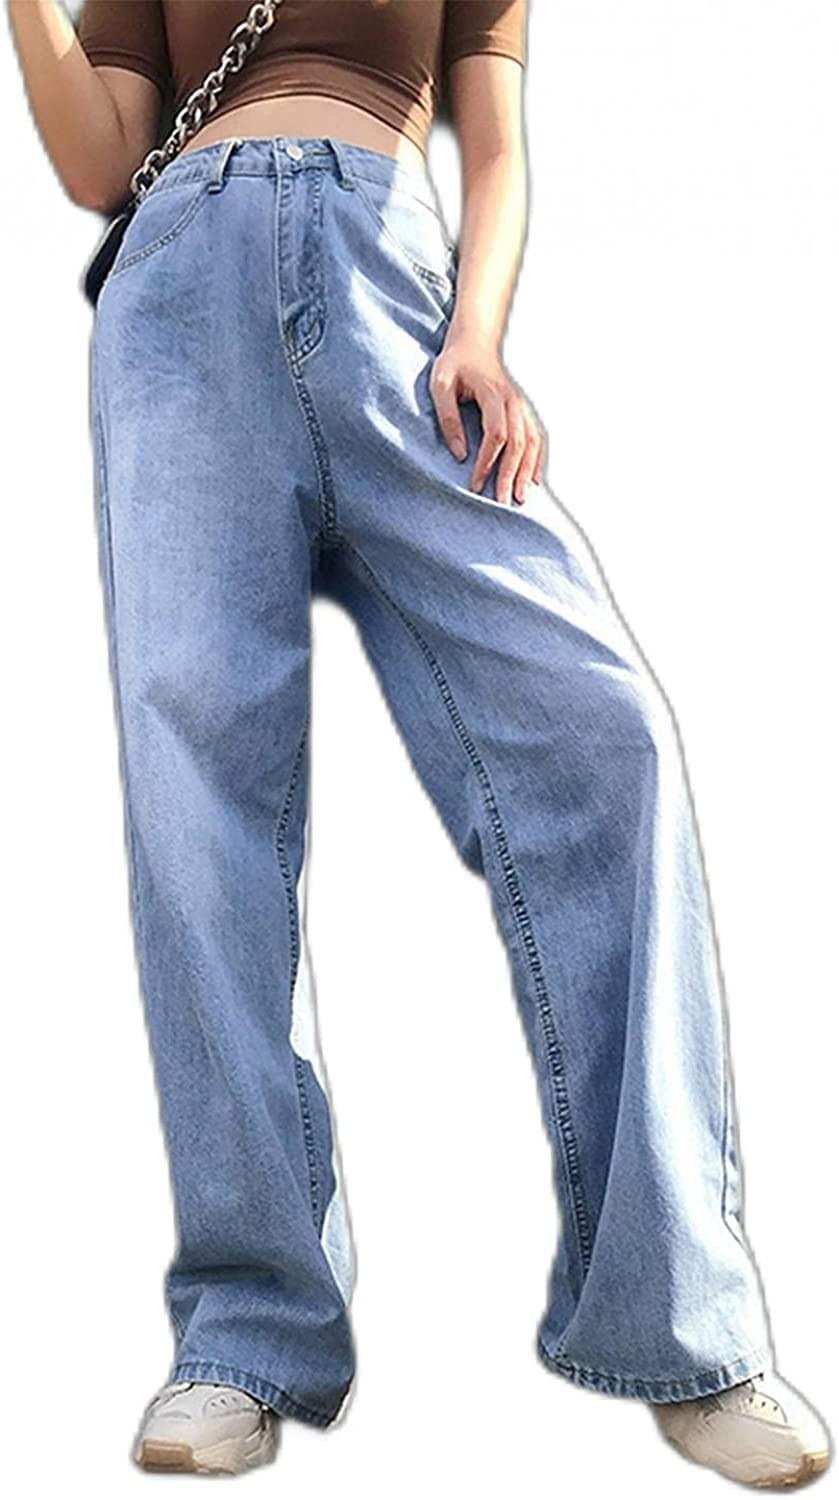 Women's Fashion Y2K Jeans, High Waisted Jeans with Butterfly Print Casual Baggy Pants Vintage Distressed Denim Trousers